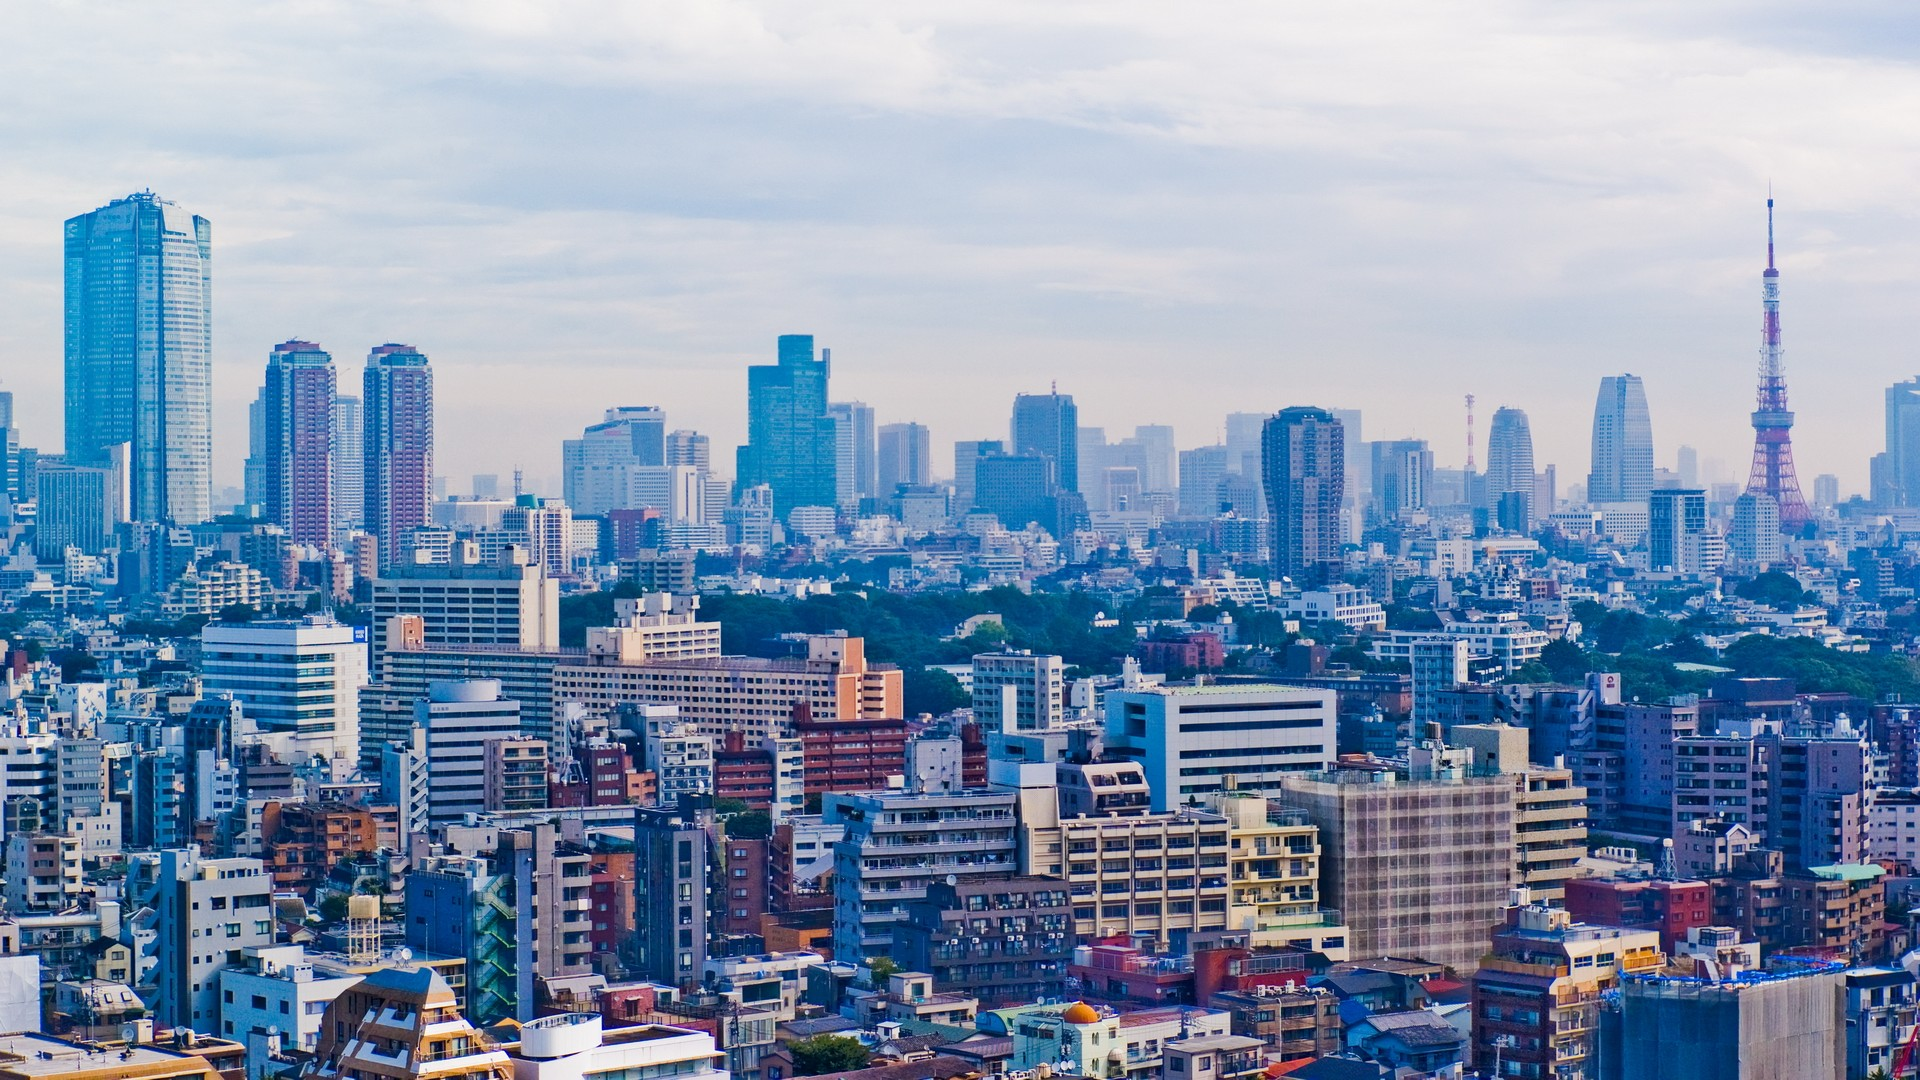 Japan Tokyo cityscapes skylines buildings skyscrapers Asia Asian 1920x1080